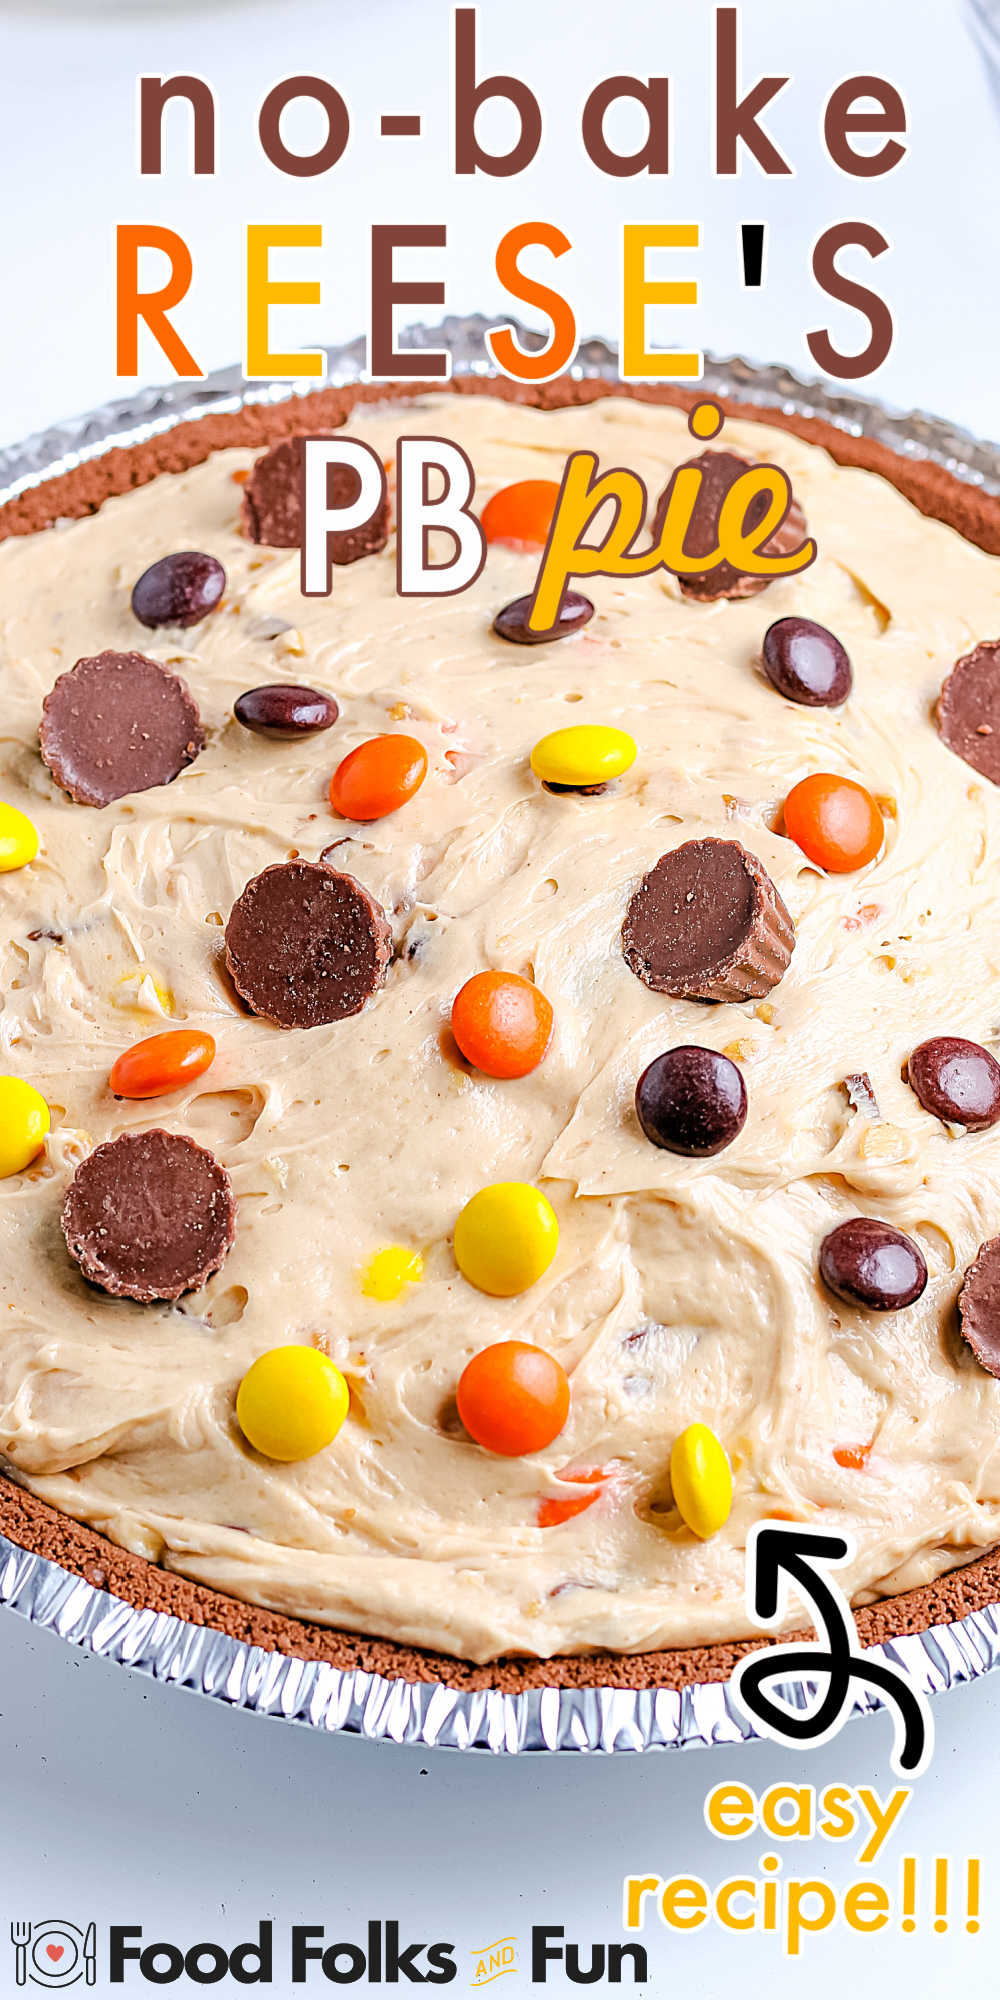 This Frozen Reese's Peanut Butter Pie is so easy to make, soft, creamy, and loaded with Reese's Pieces and Reese's Peanut Butter Cups. via @foodfolksandfun